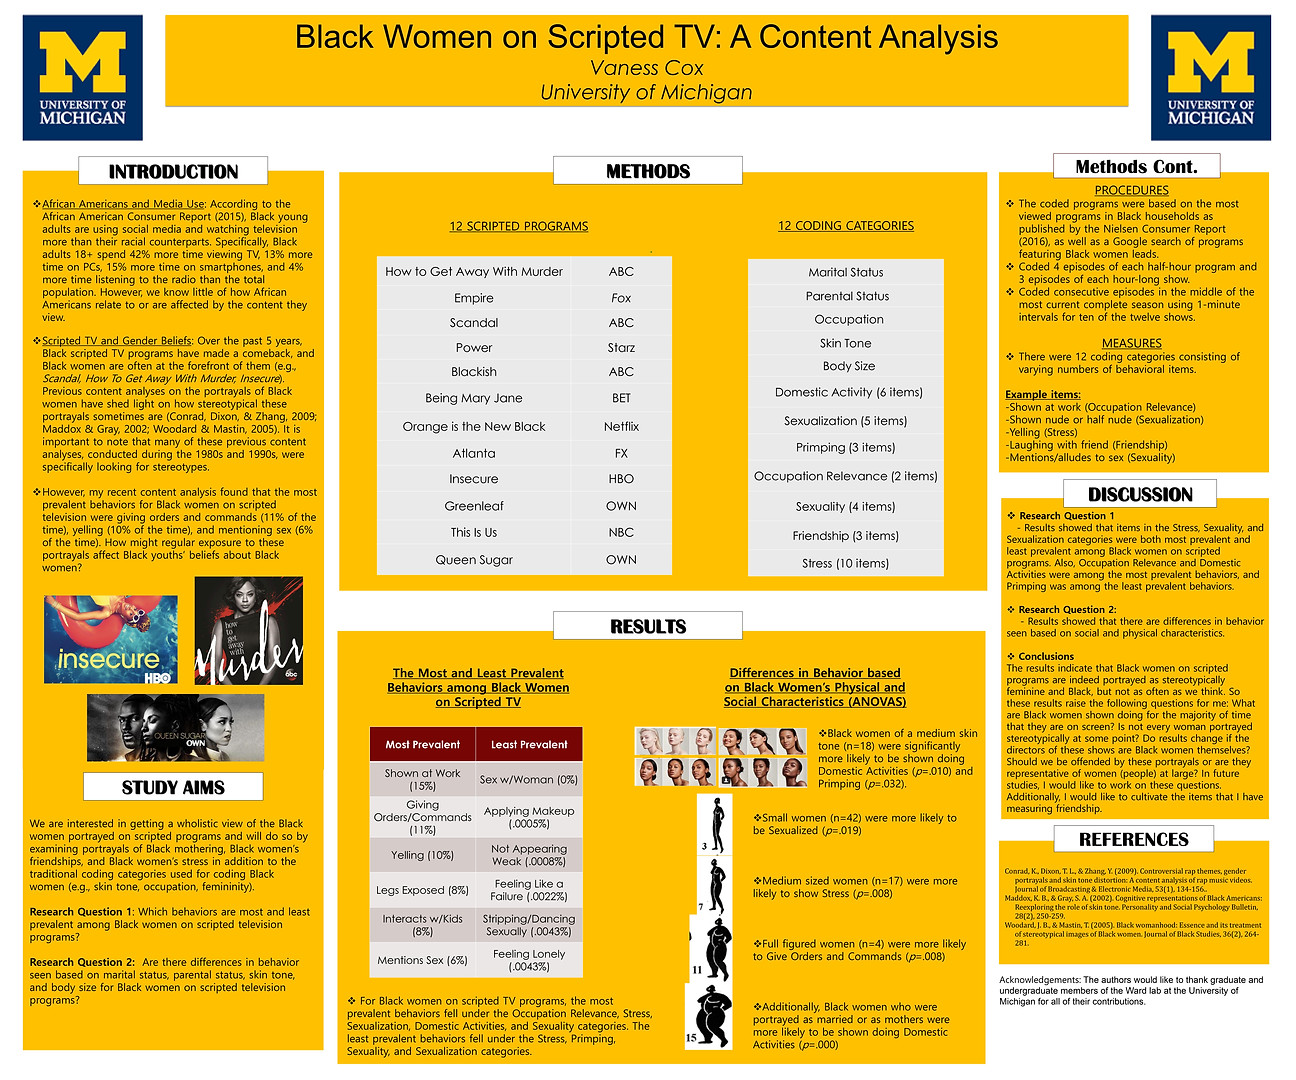 Black Women on Scripted TV: A Content Analysis